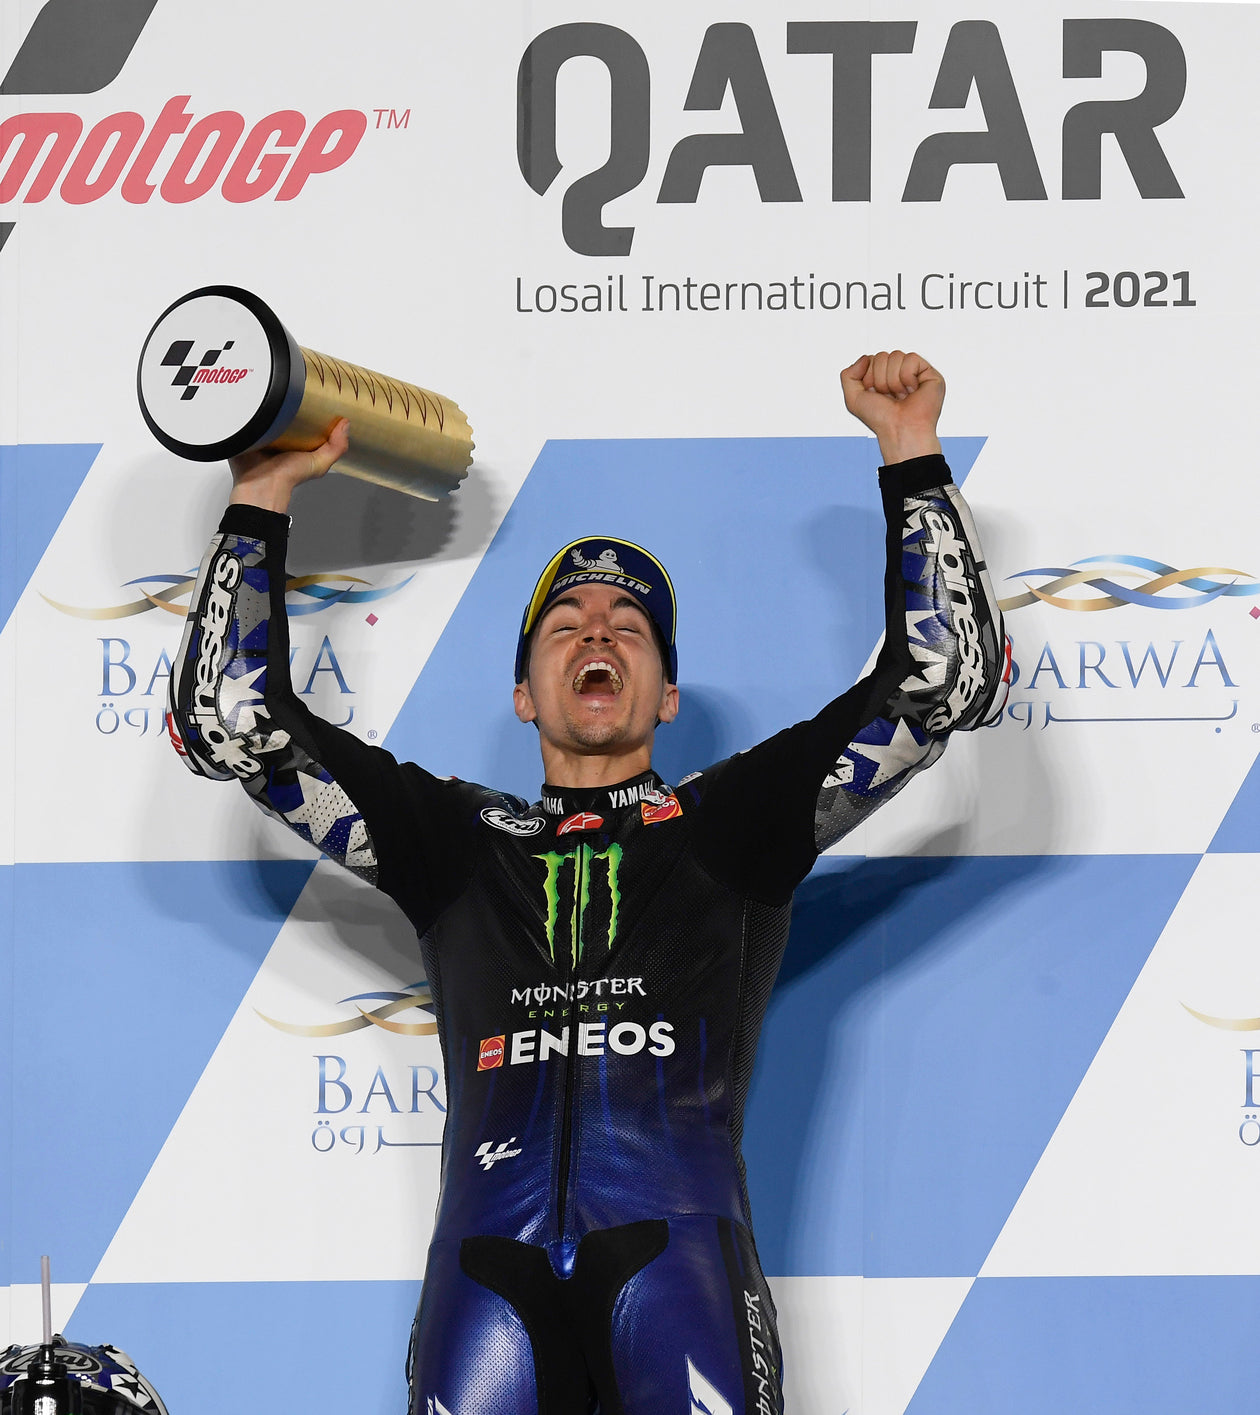 MAVERICK VINALES IS TOP GUN AFTER AGGRESSIVE RIDE SEES HIM SNATCH MOTOGP WIN IN QATAR; PECCO BAGNAIA THIRD